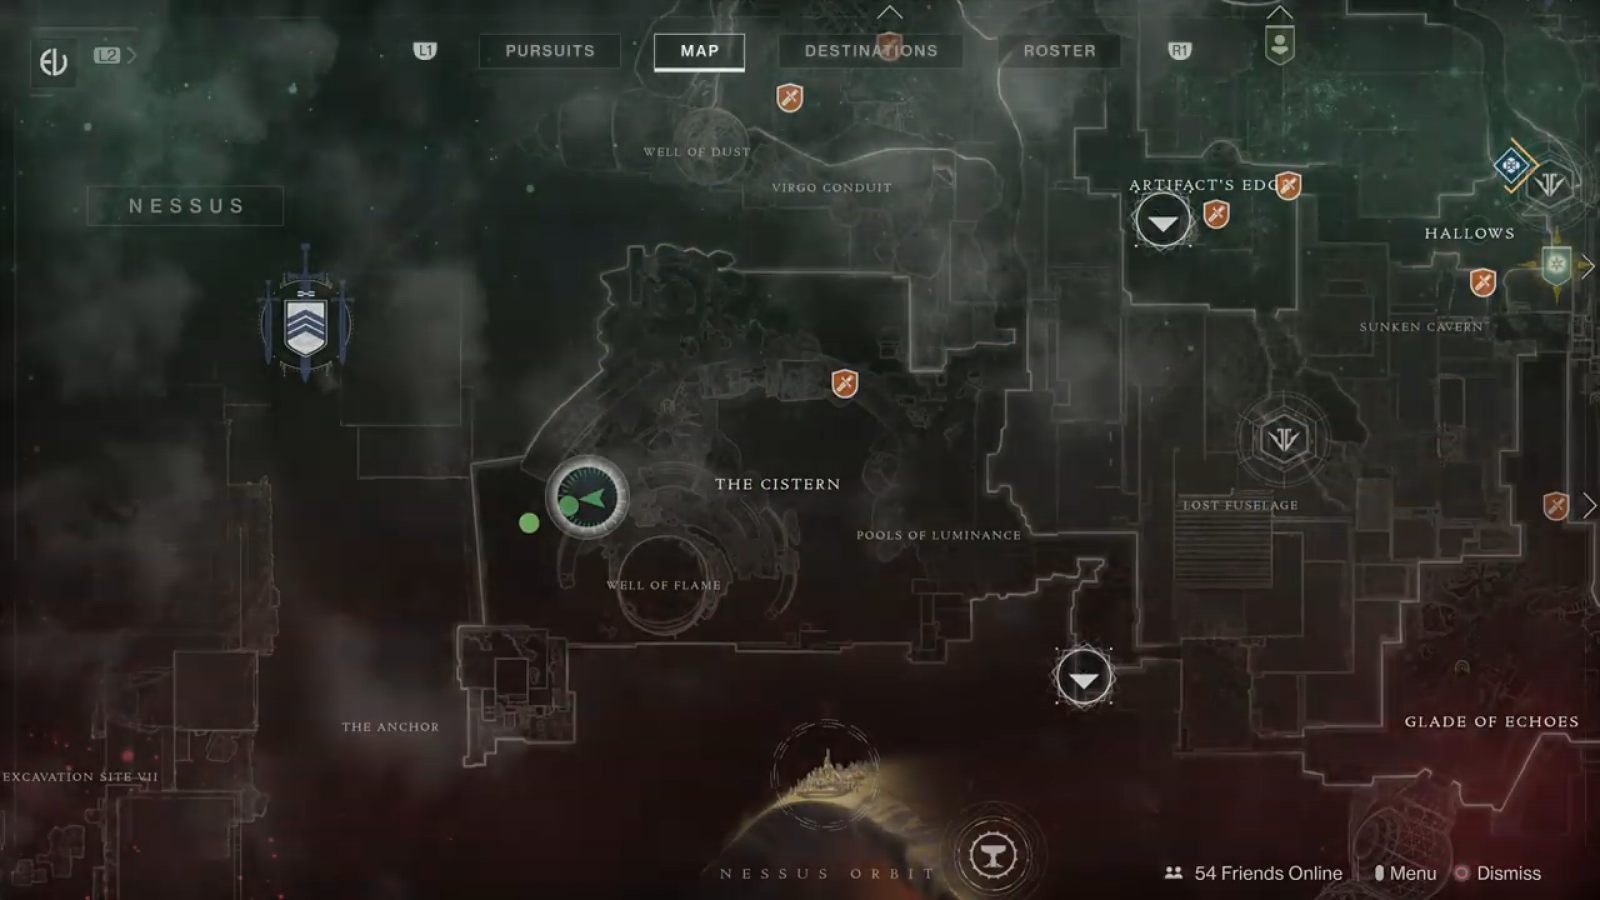 Destiny 2' Truth Quest Guide: Map Asunder, Downed Corsair